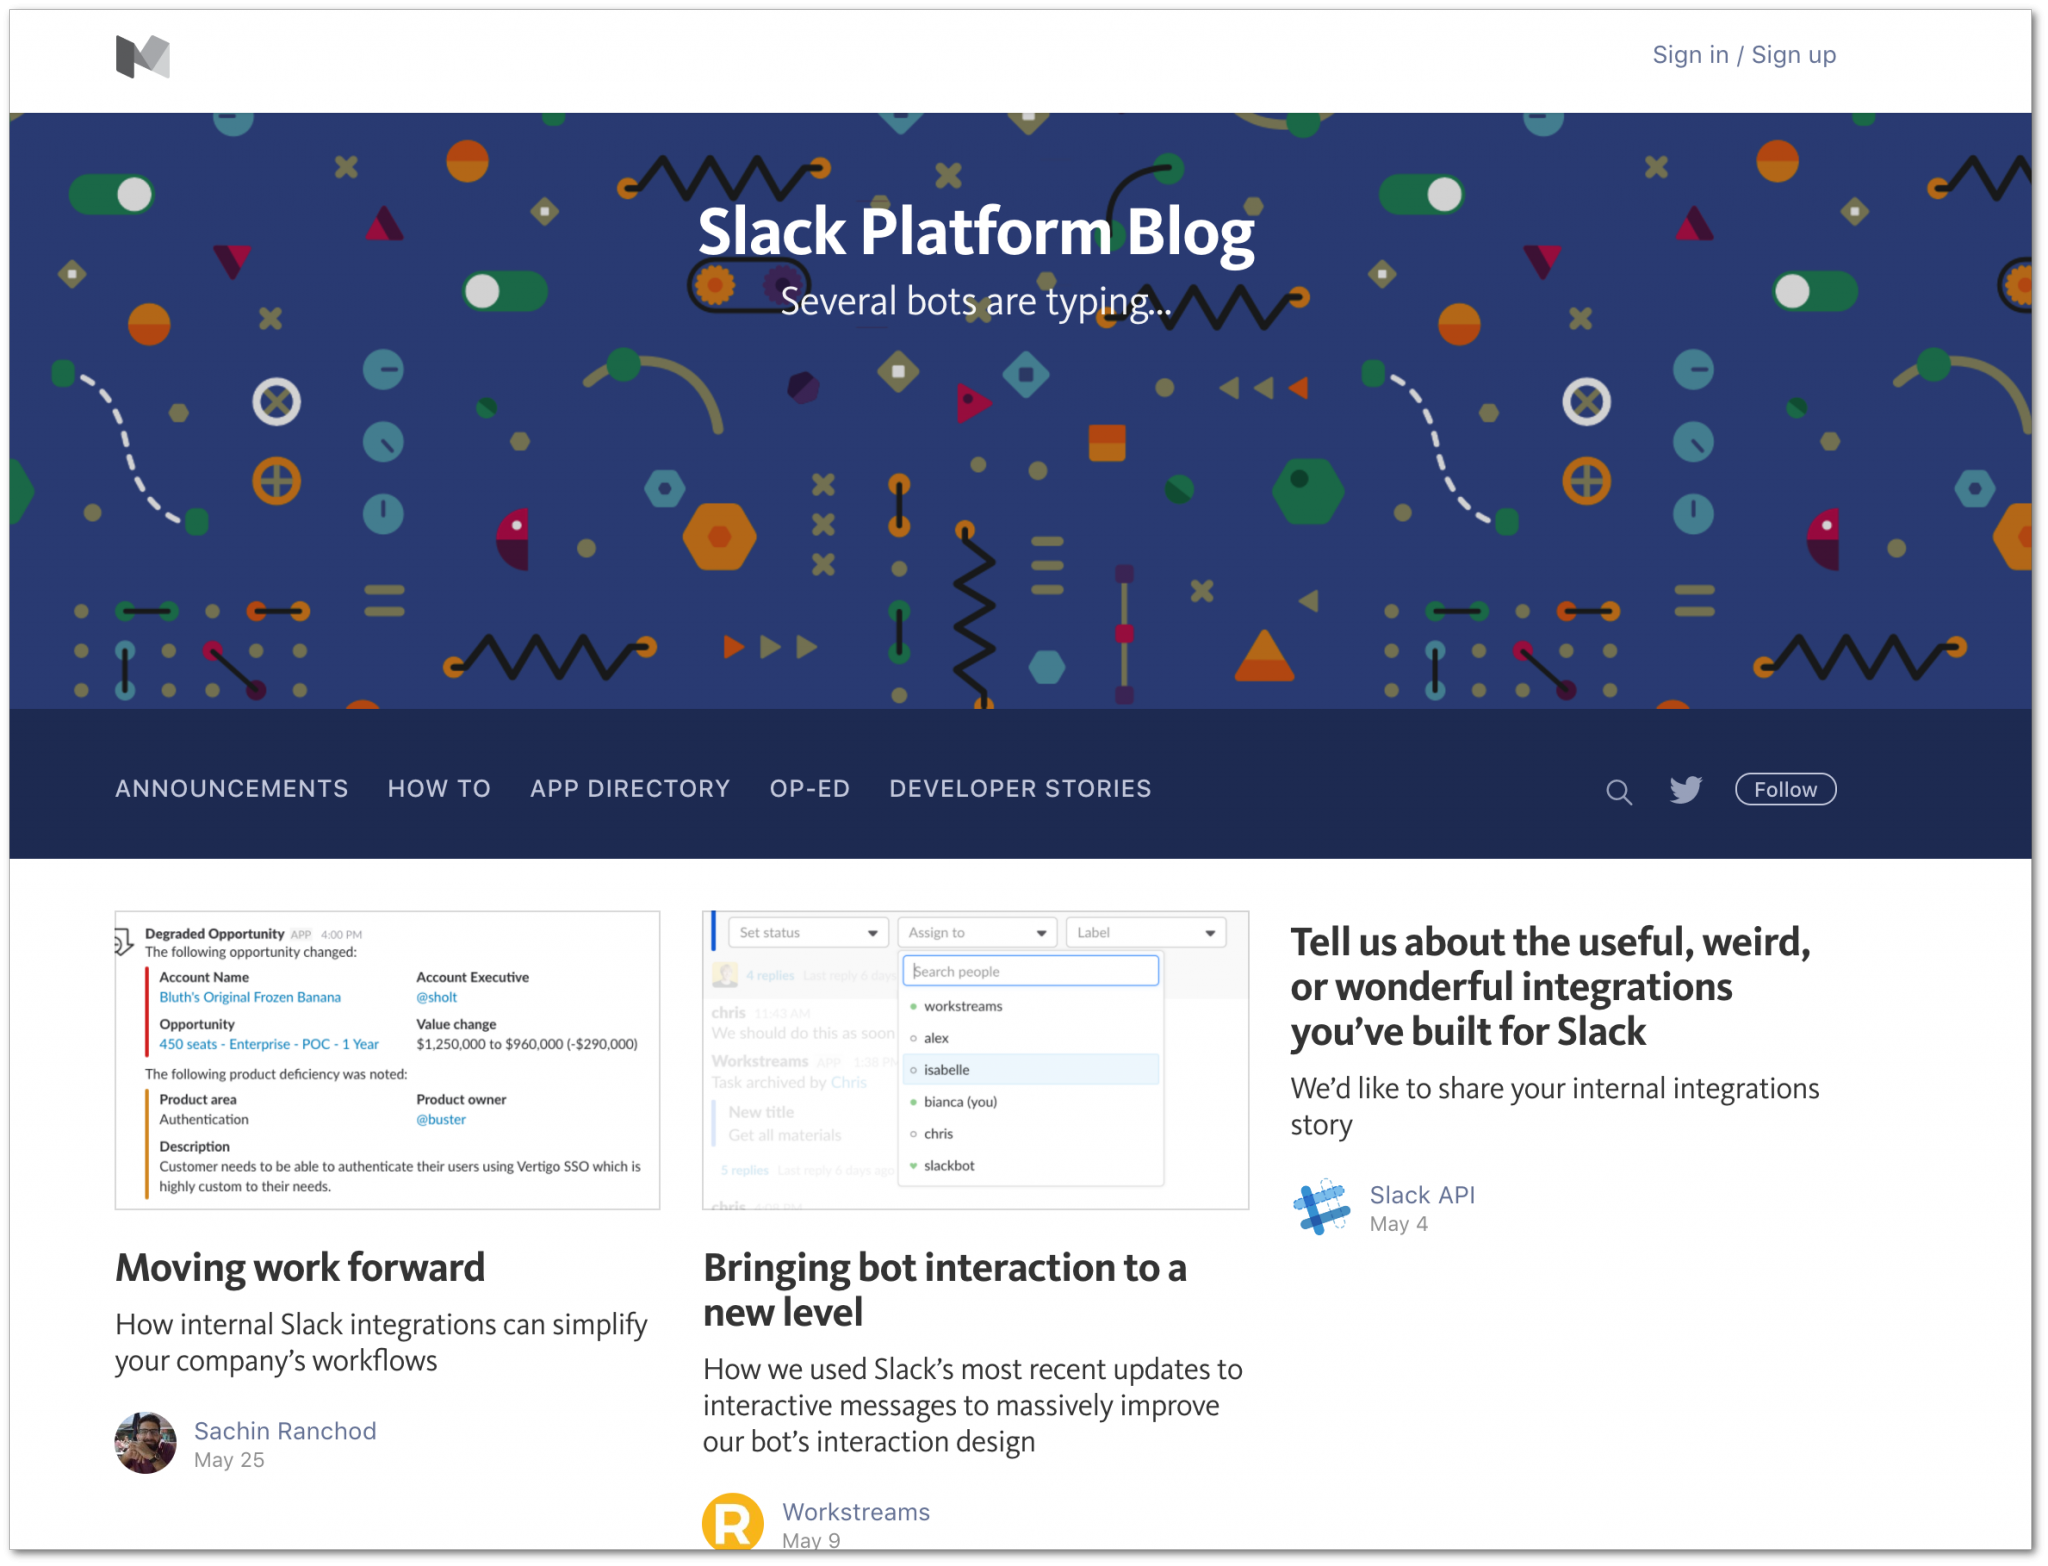 Blog on Medium (Slack blog)